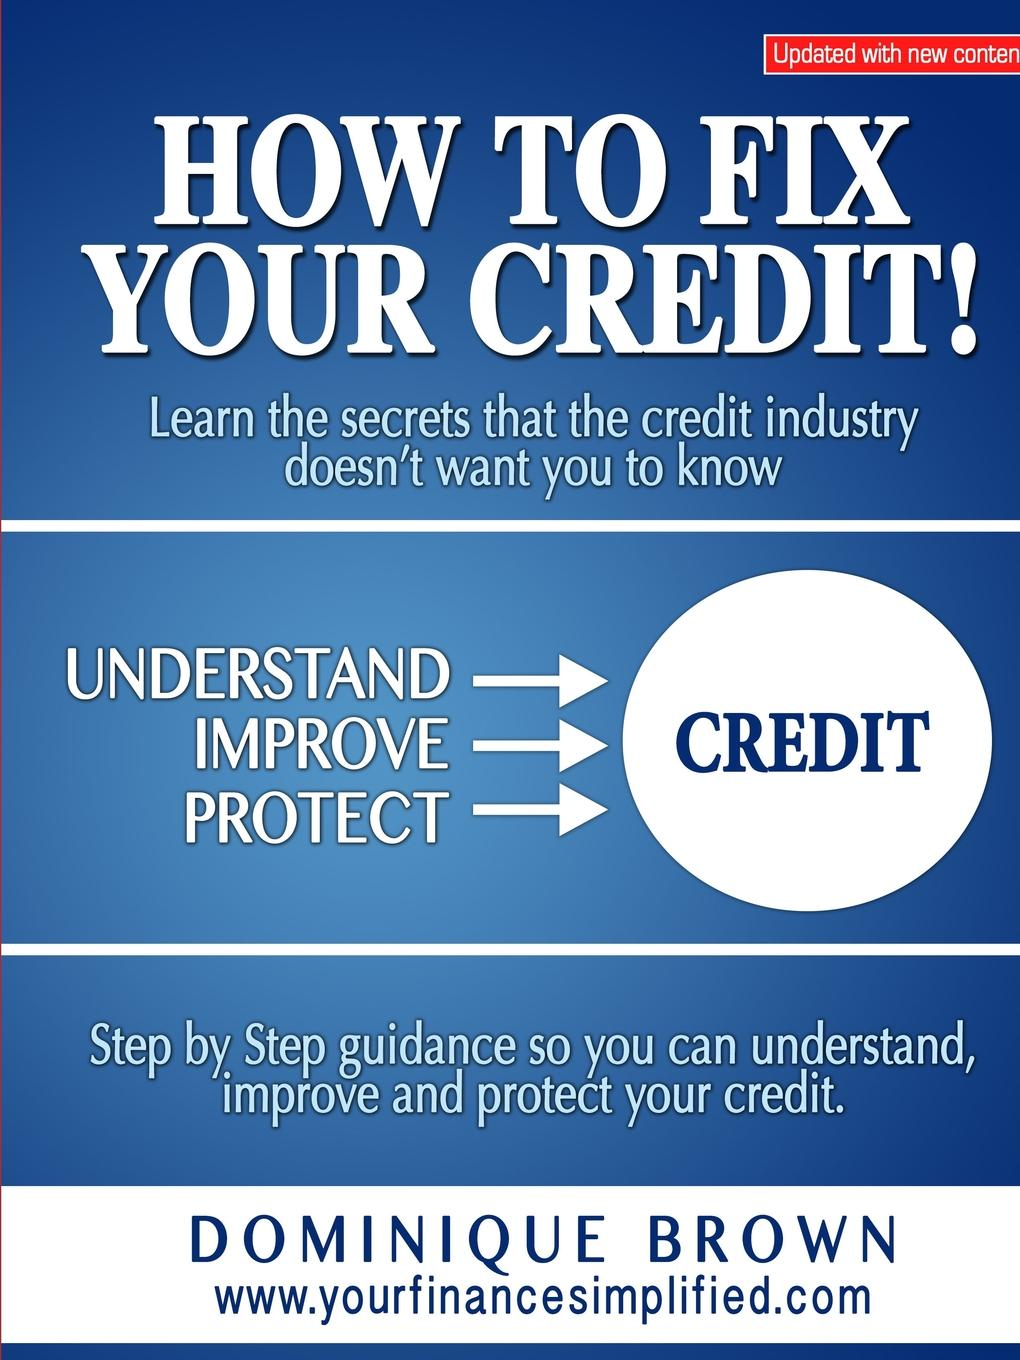 How to Fix Your Credit Did you know that millions of people are dealing with credit problems...